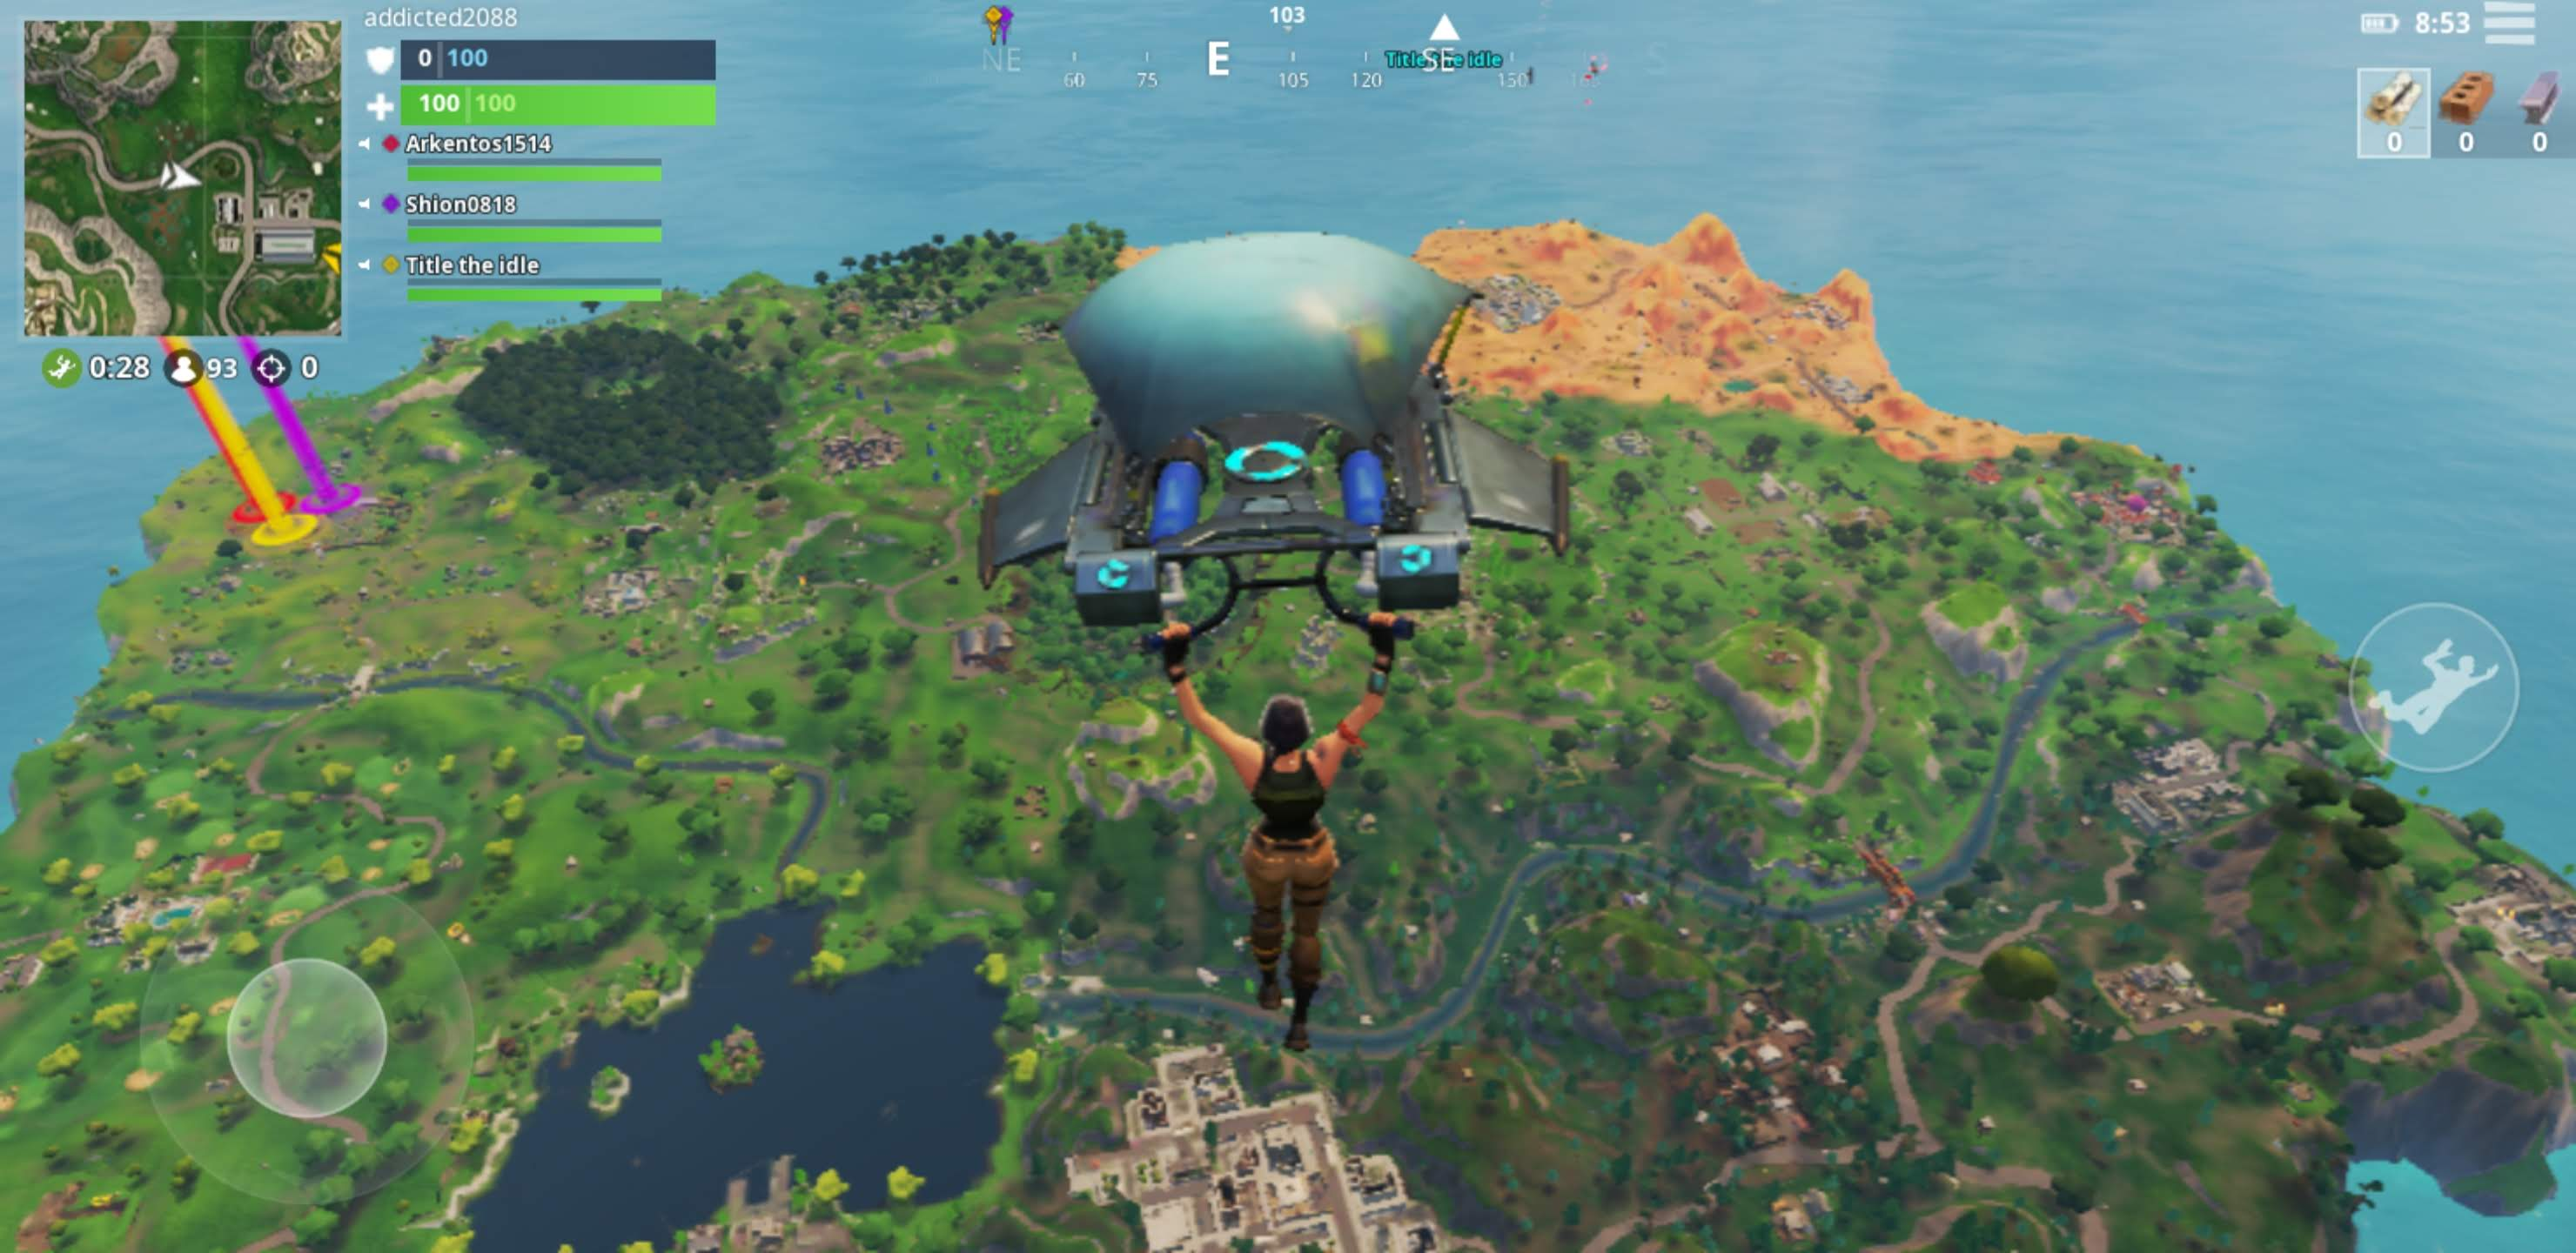 we will try it out on the galaxy s9 and see if it s the same on that device the galaxy note 9 may well have exclusive rights to the highest graphics - fortnite auf samsung galaxy s7